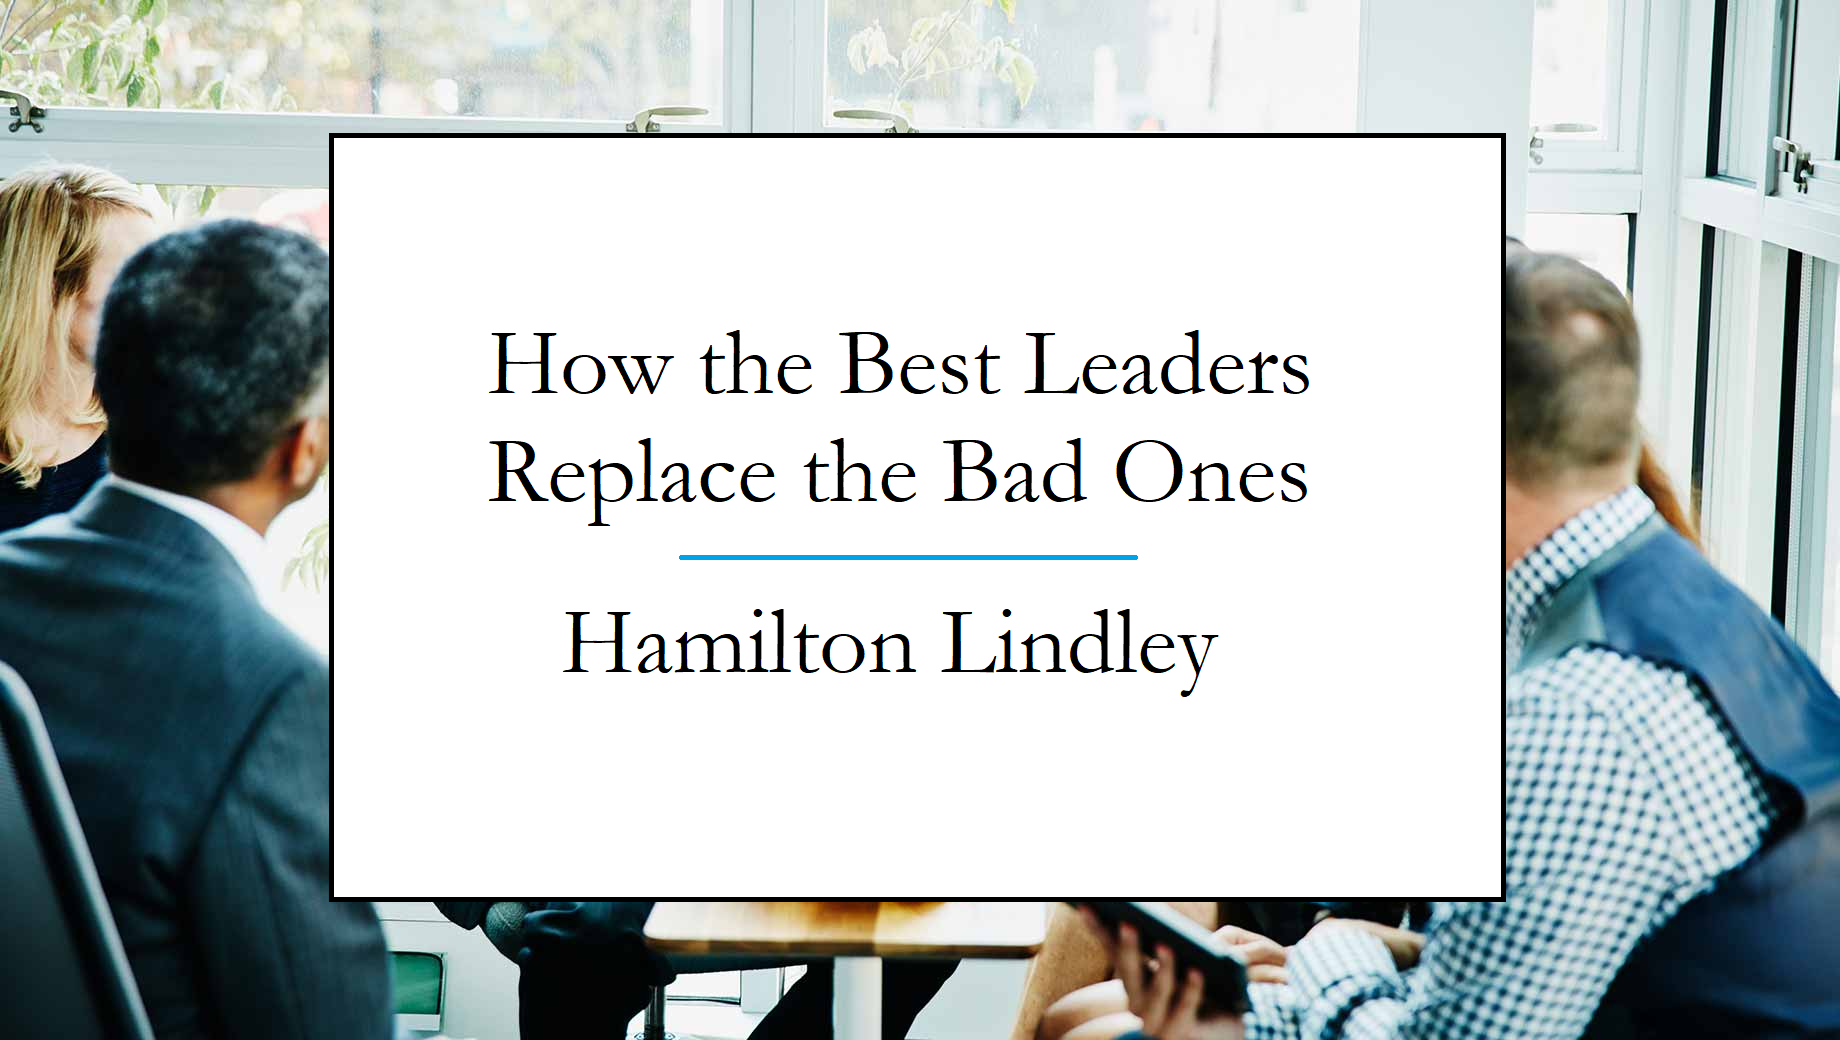 Lindley Hamilton discusses how good leaders replace bad leaders